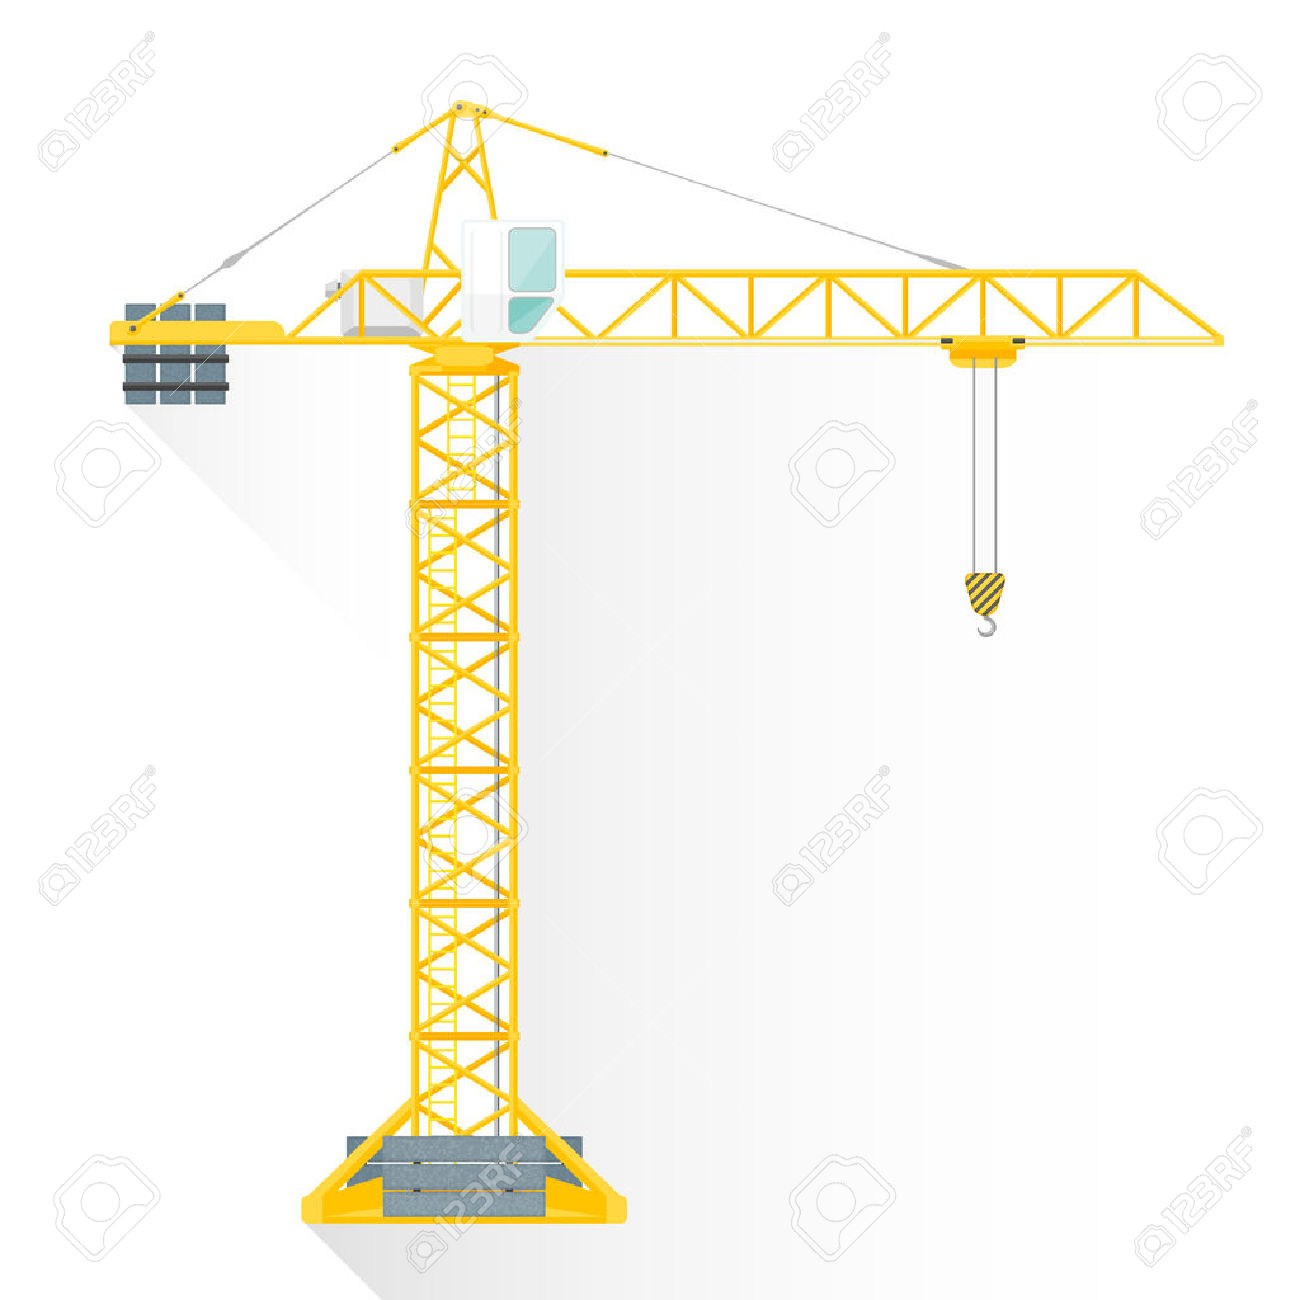 29,172 Cranes Stock Vector Illustration And Royalty Free Cranes.